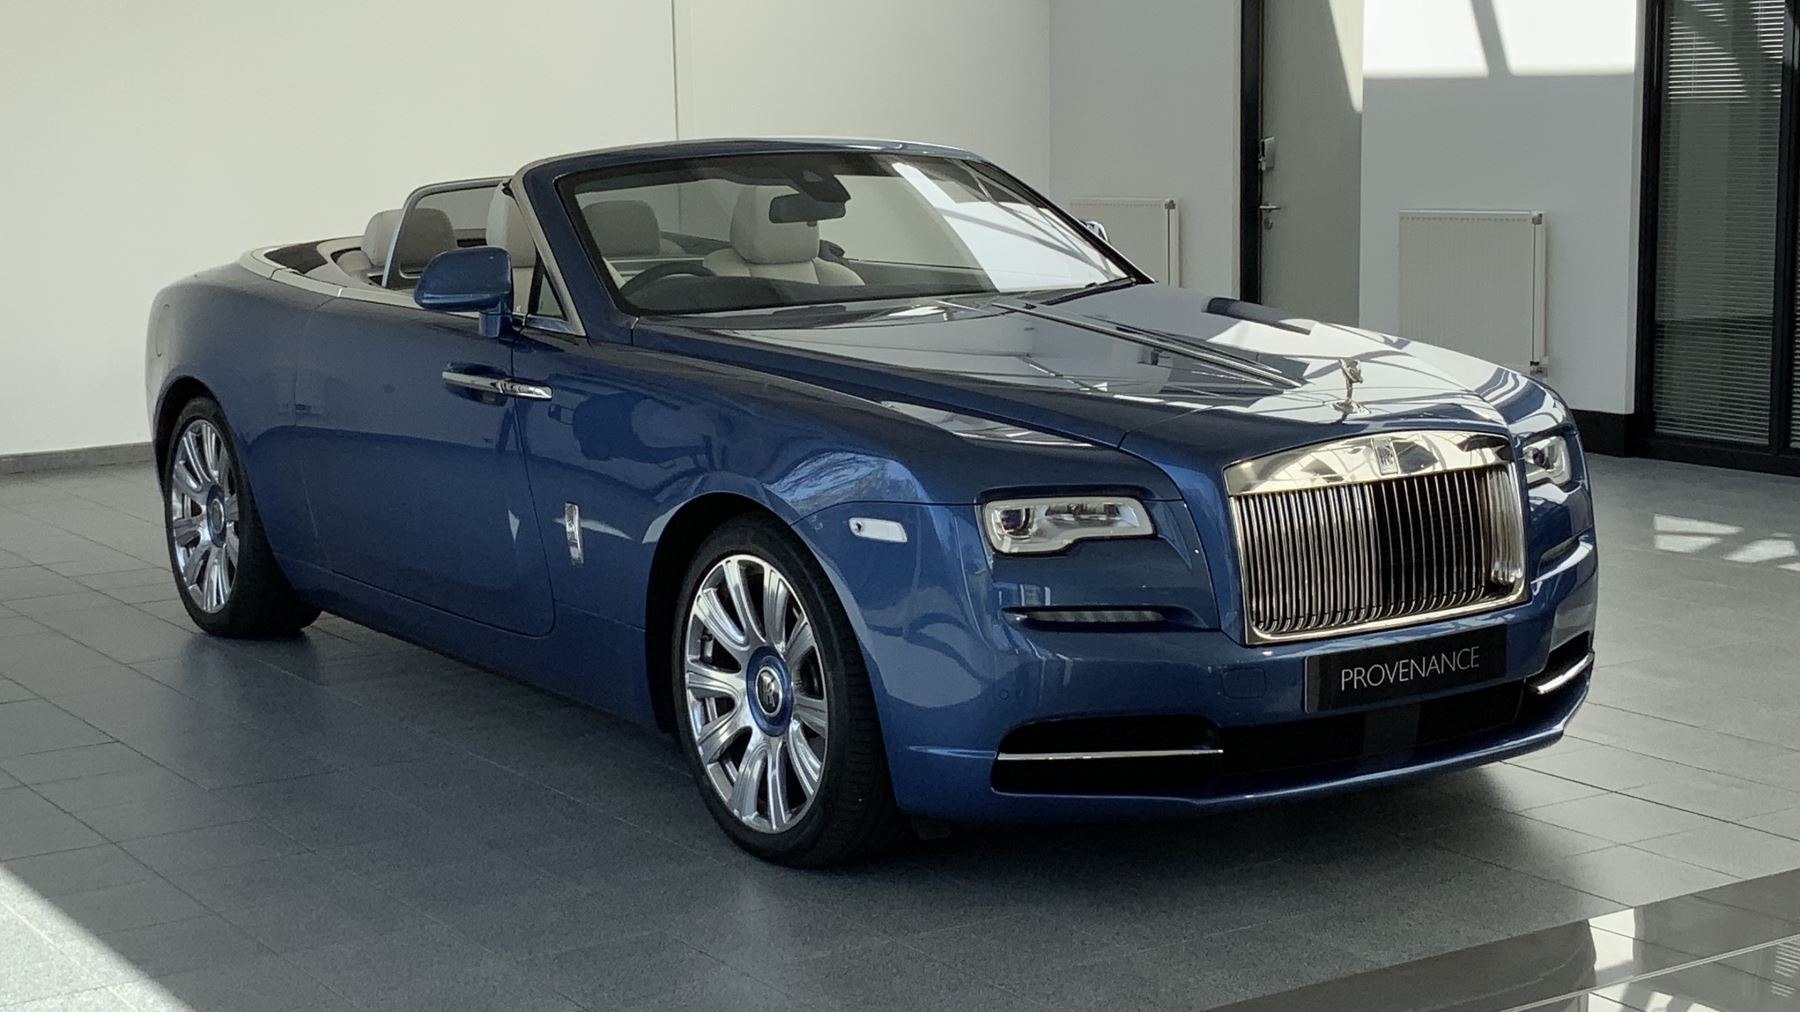 Rolls-Royce Dawn 2dr Auto 6.6 Automatic Convertible (2017) image